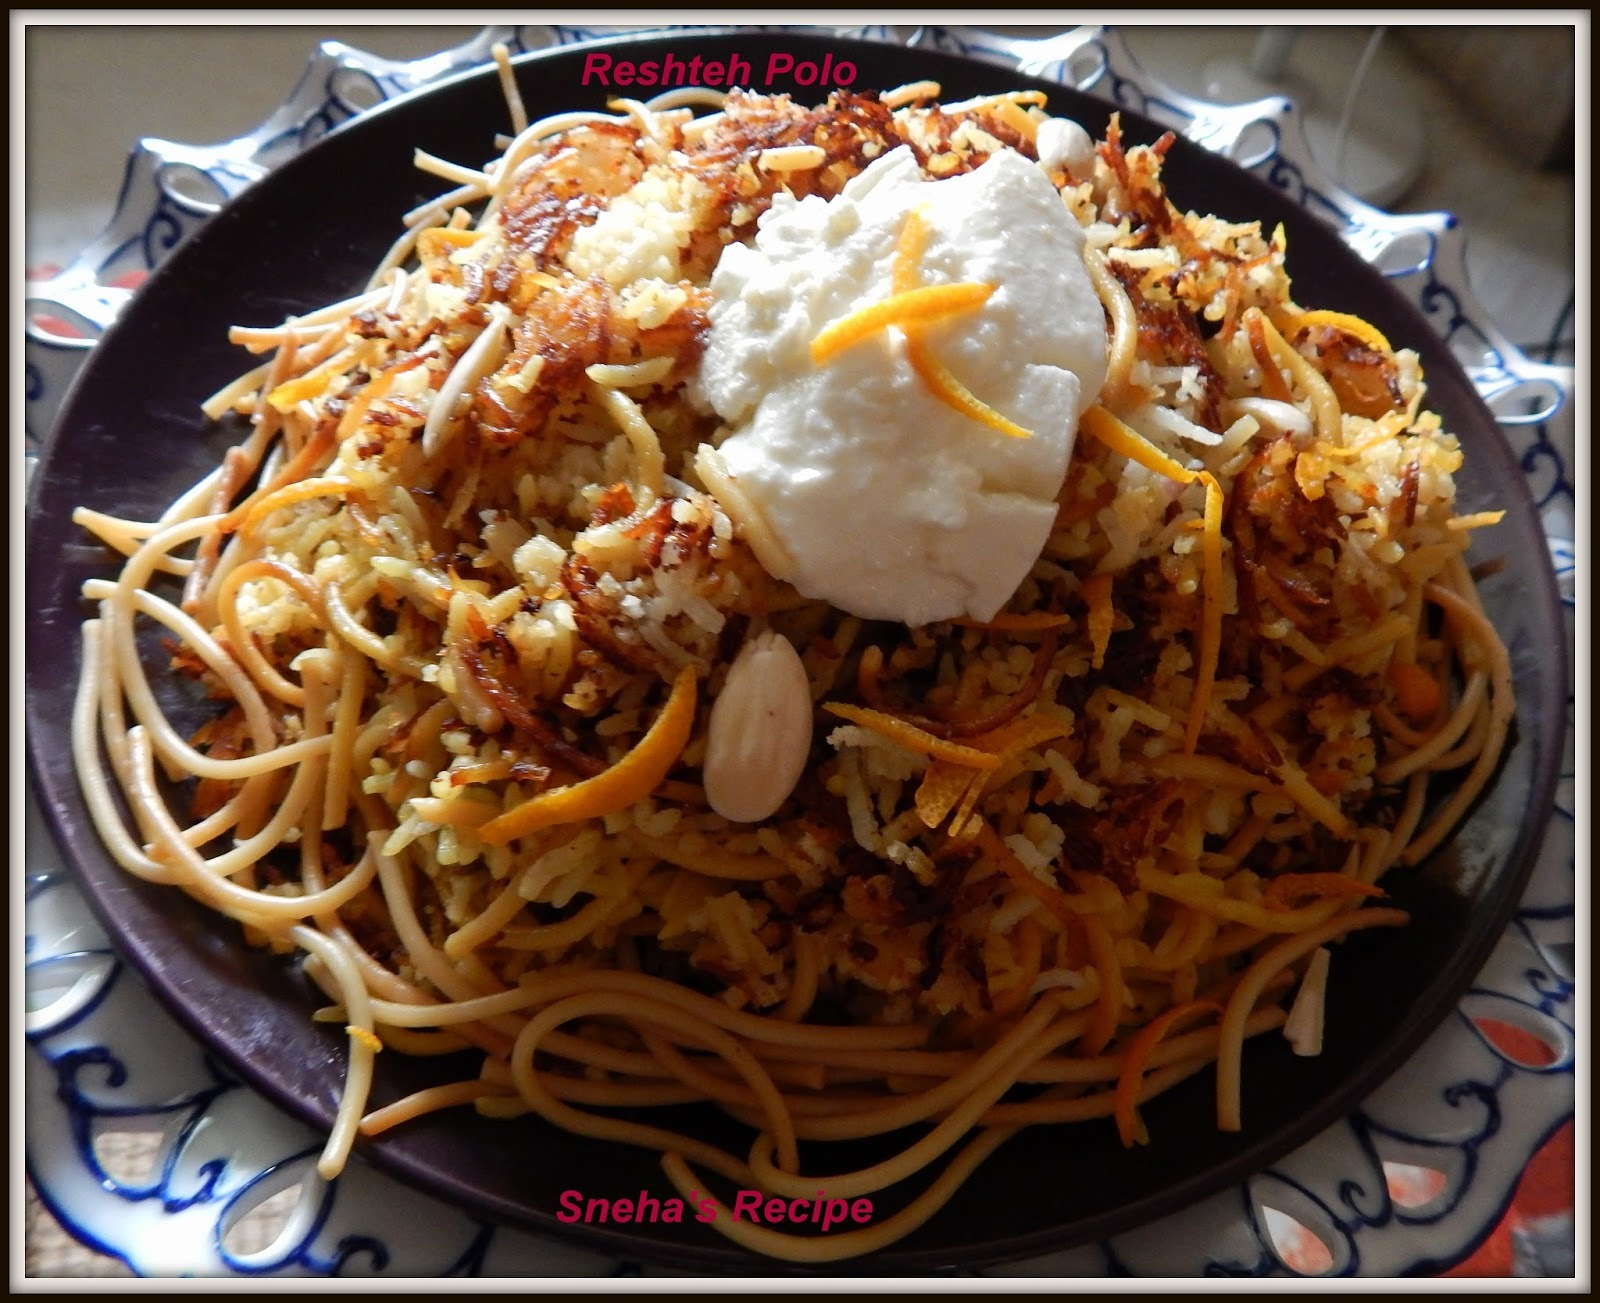 Reshteh Polo - The Persian Pilaf -Persian Rice with Noodles